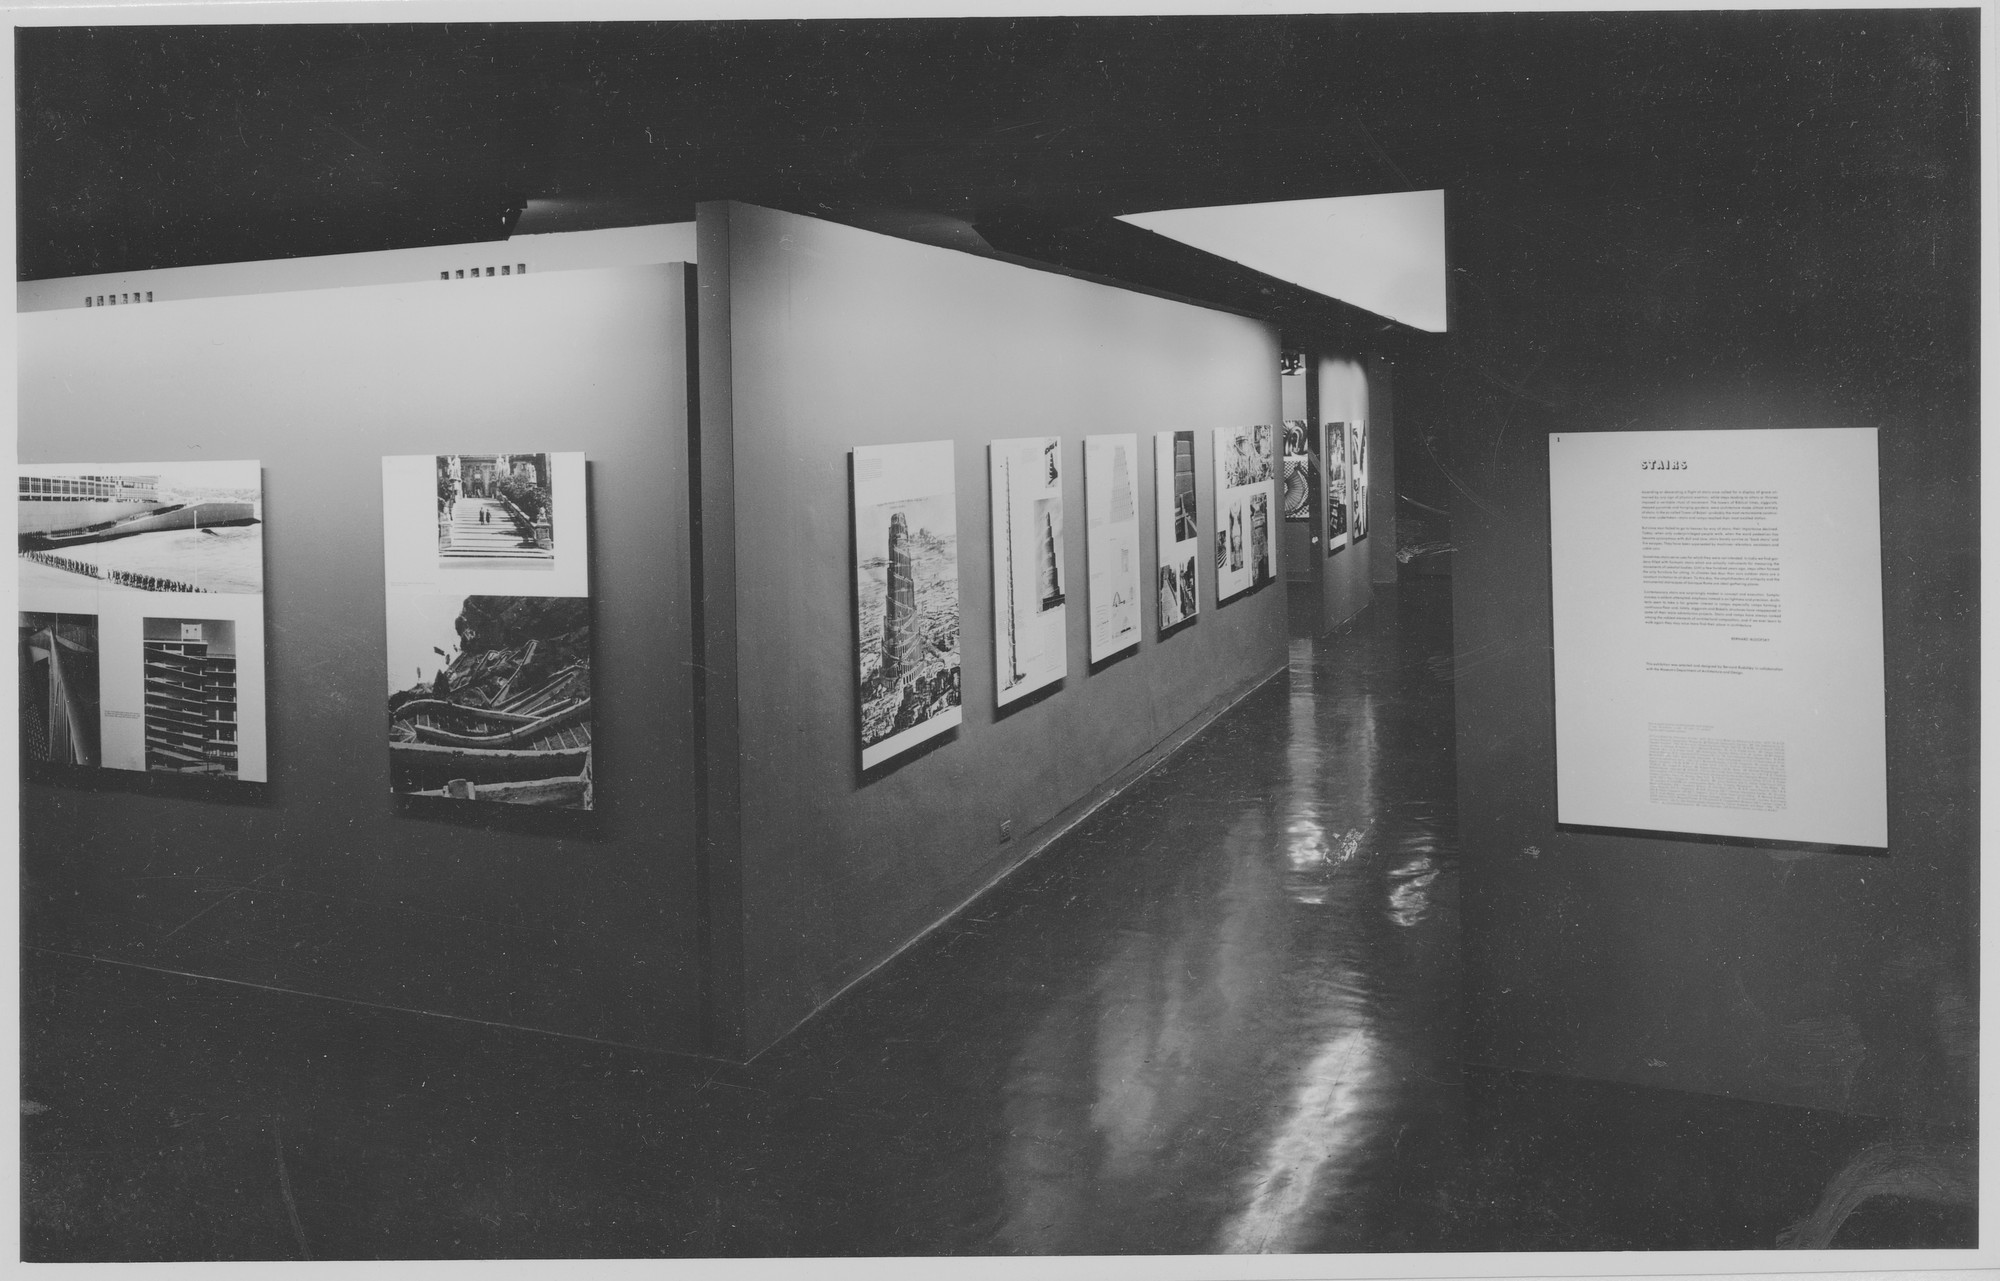 "Installation view of the exhibition, ""Stairs."" October 9, 1963–December1, 1963. Photographic Archive. The Museum of Modern Art Archives, New York. IN730.1. Photograph by George Barrows."